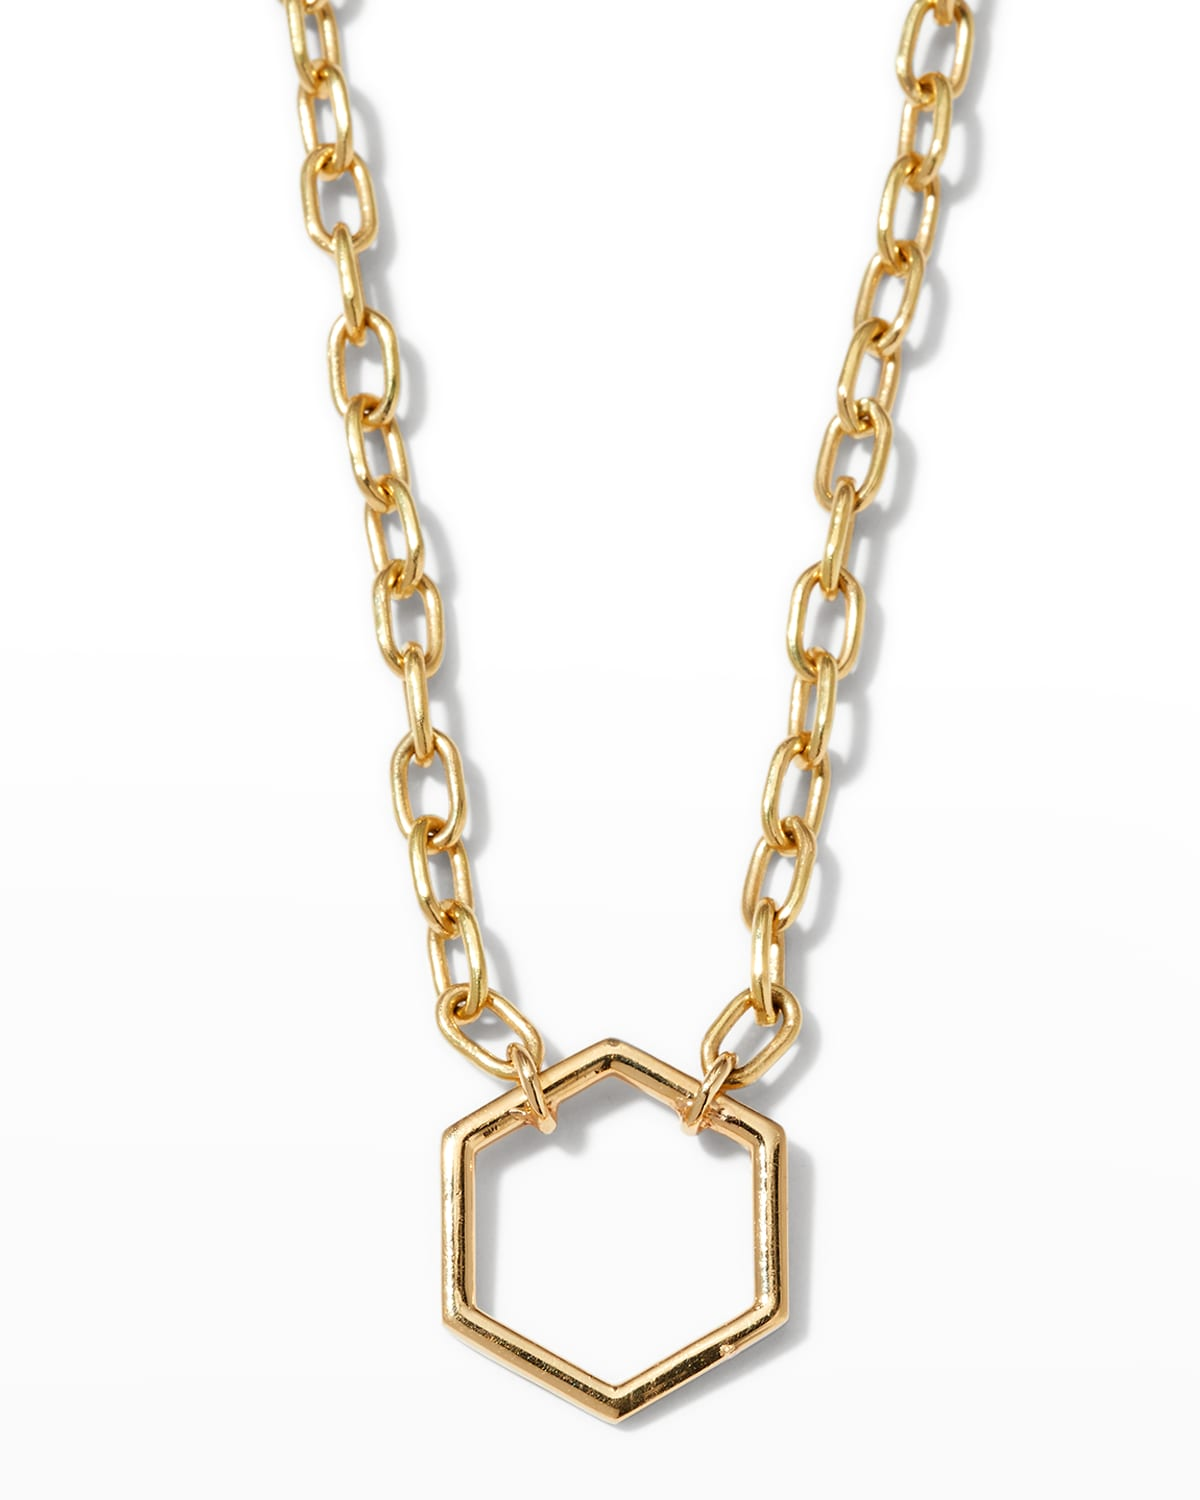 18k Yellow Gold Thin Foundation Necklace